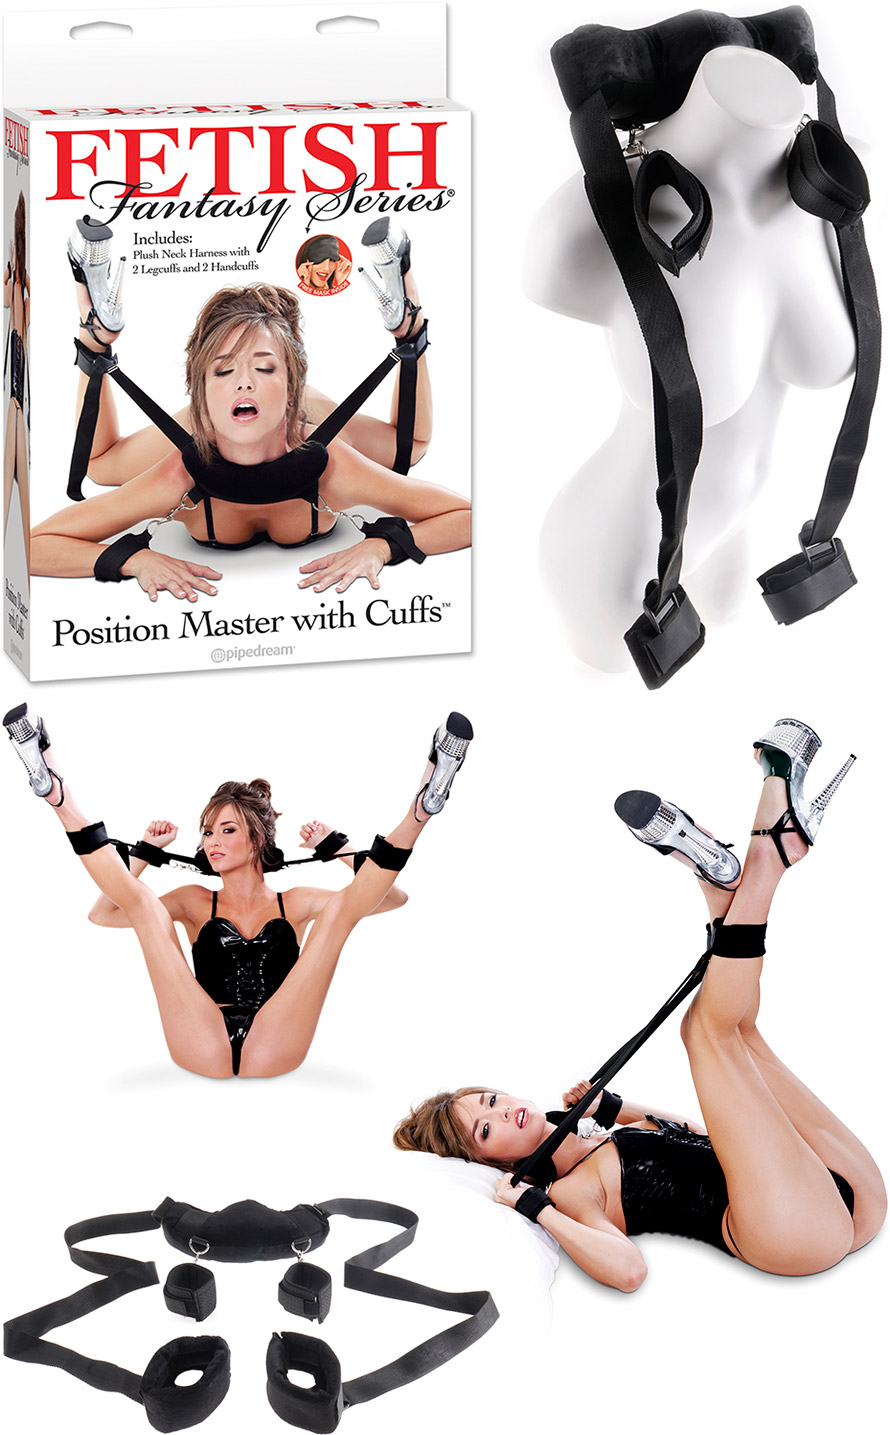 Fetish Fantasy Position Master bondage harness with handcuffs